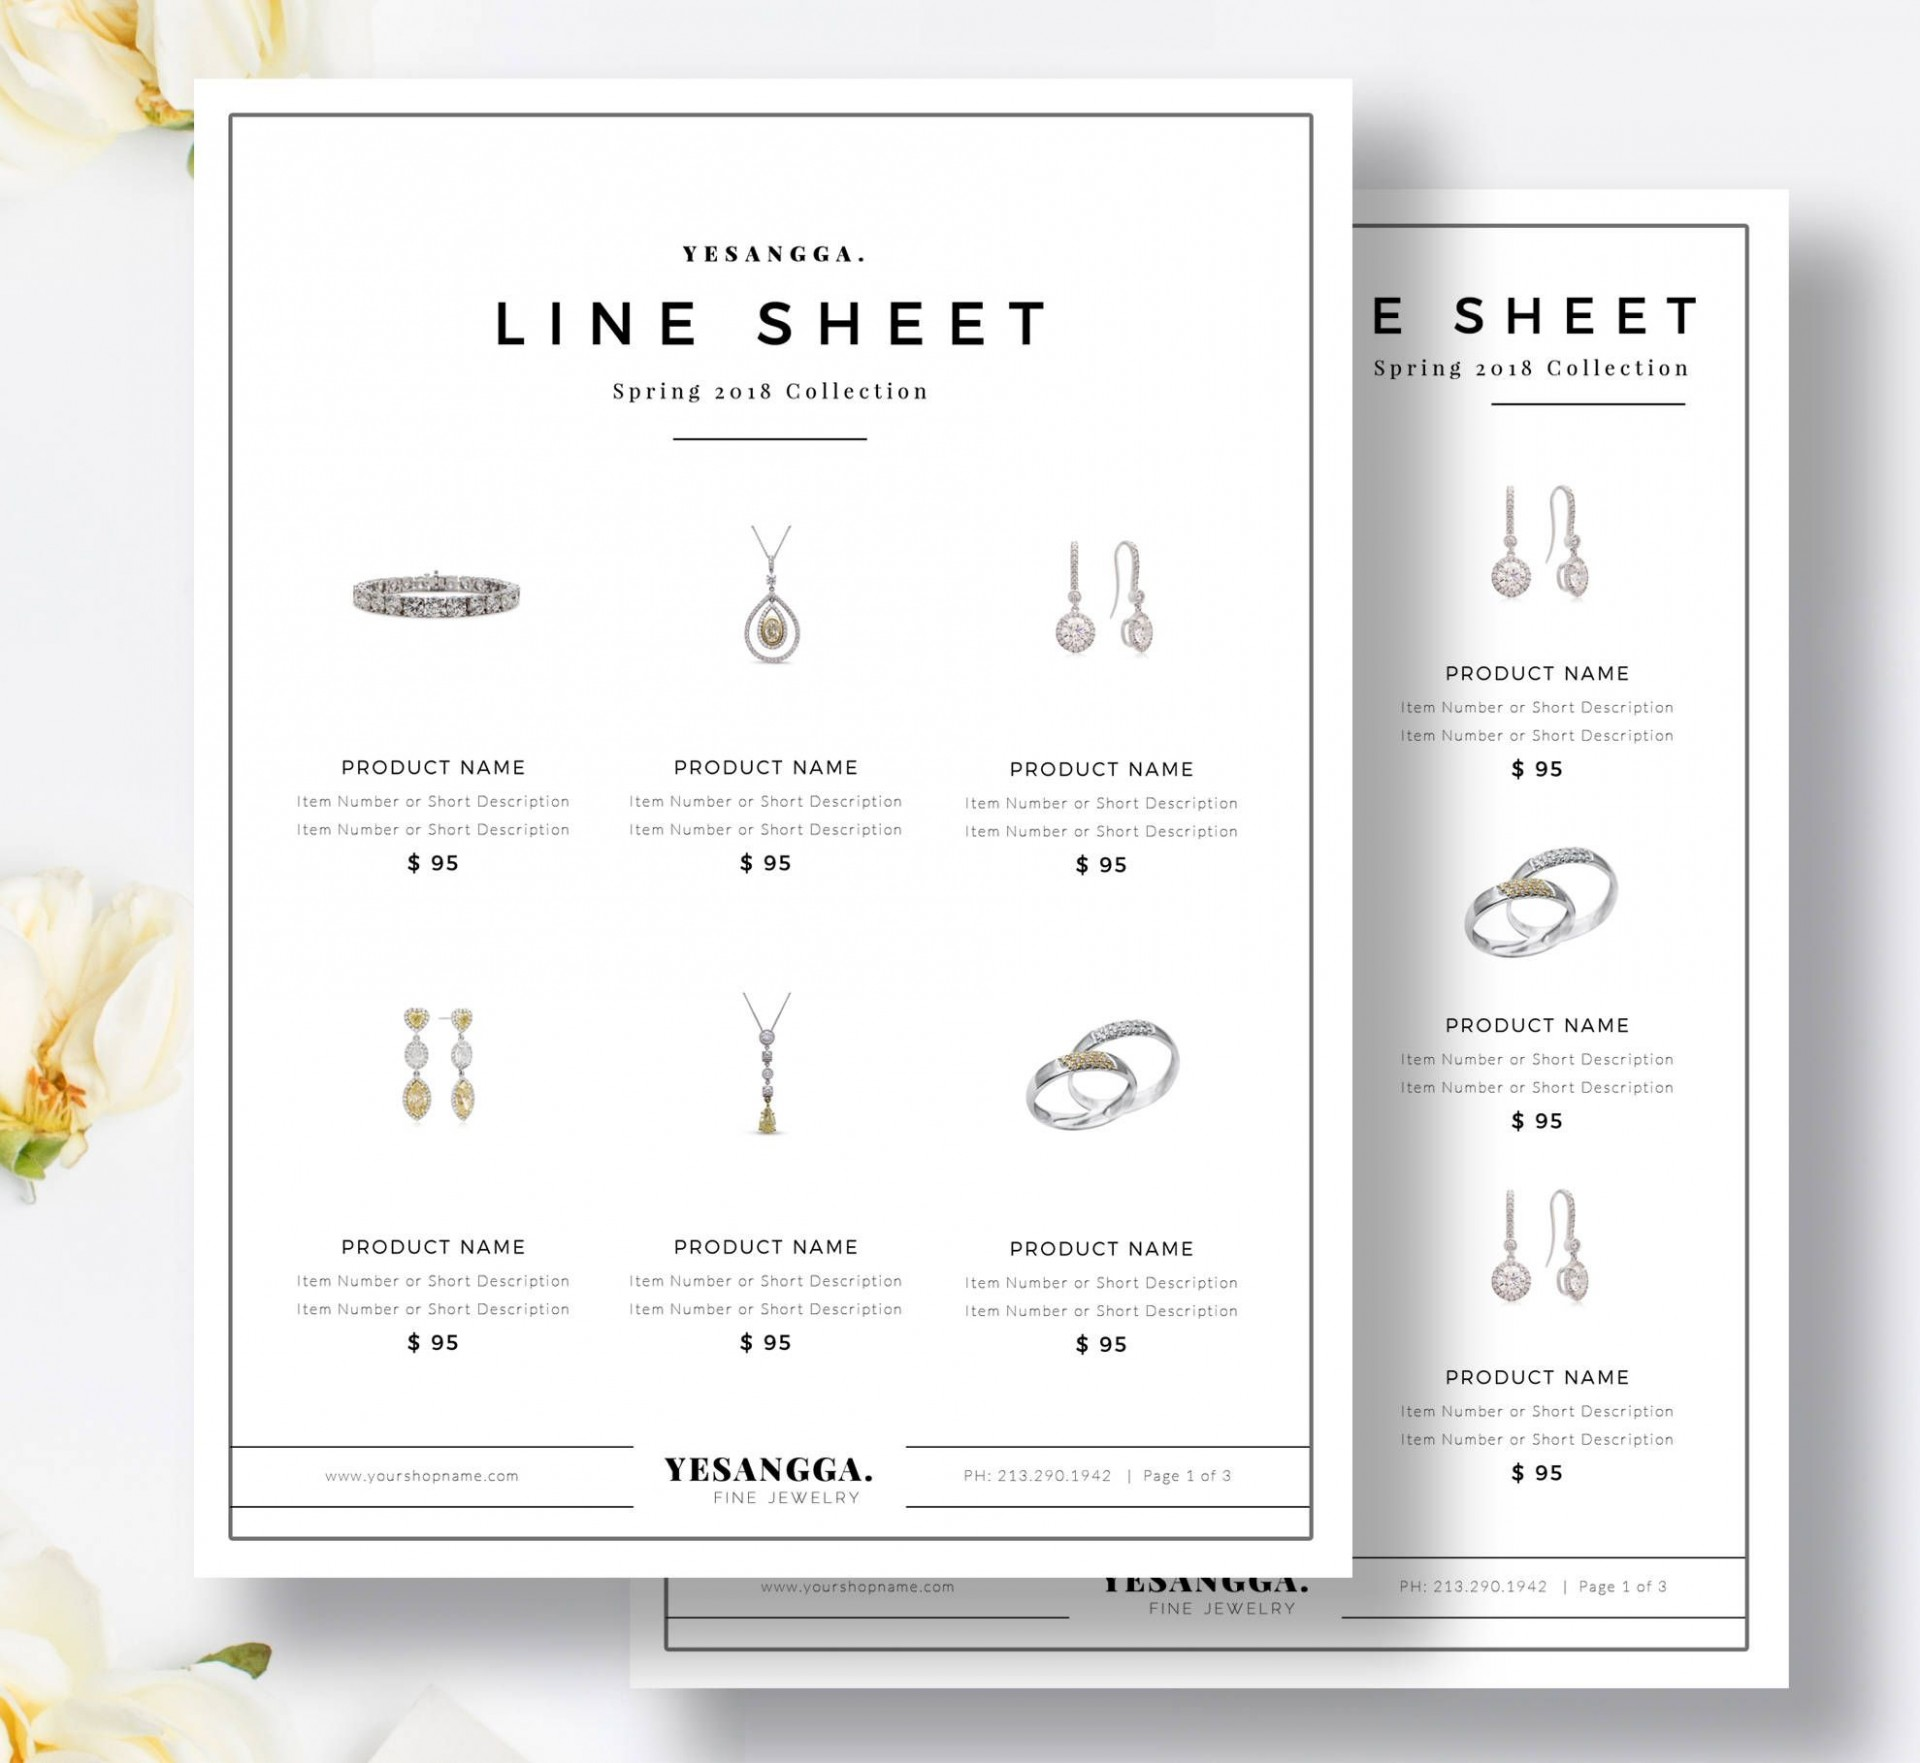 006 Unusual Wholesale Line Sheet Template Sample  Fashion Free Excel1920